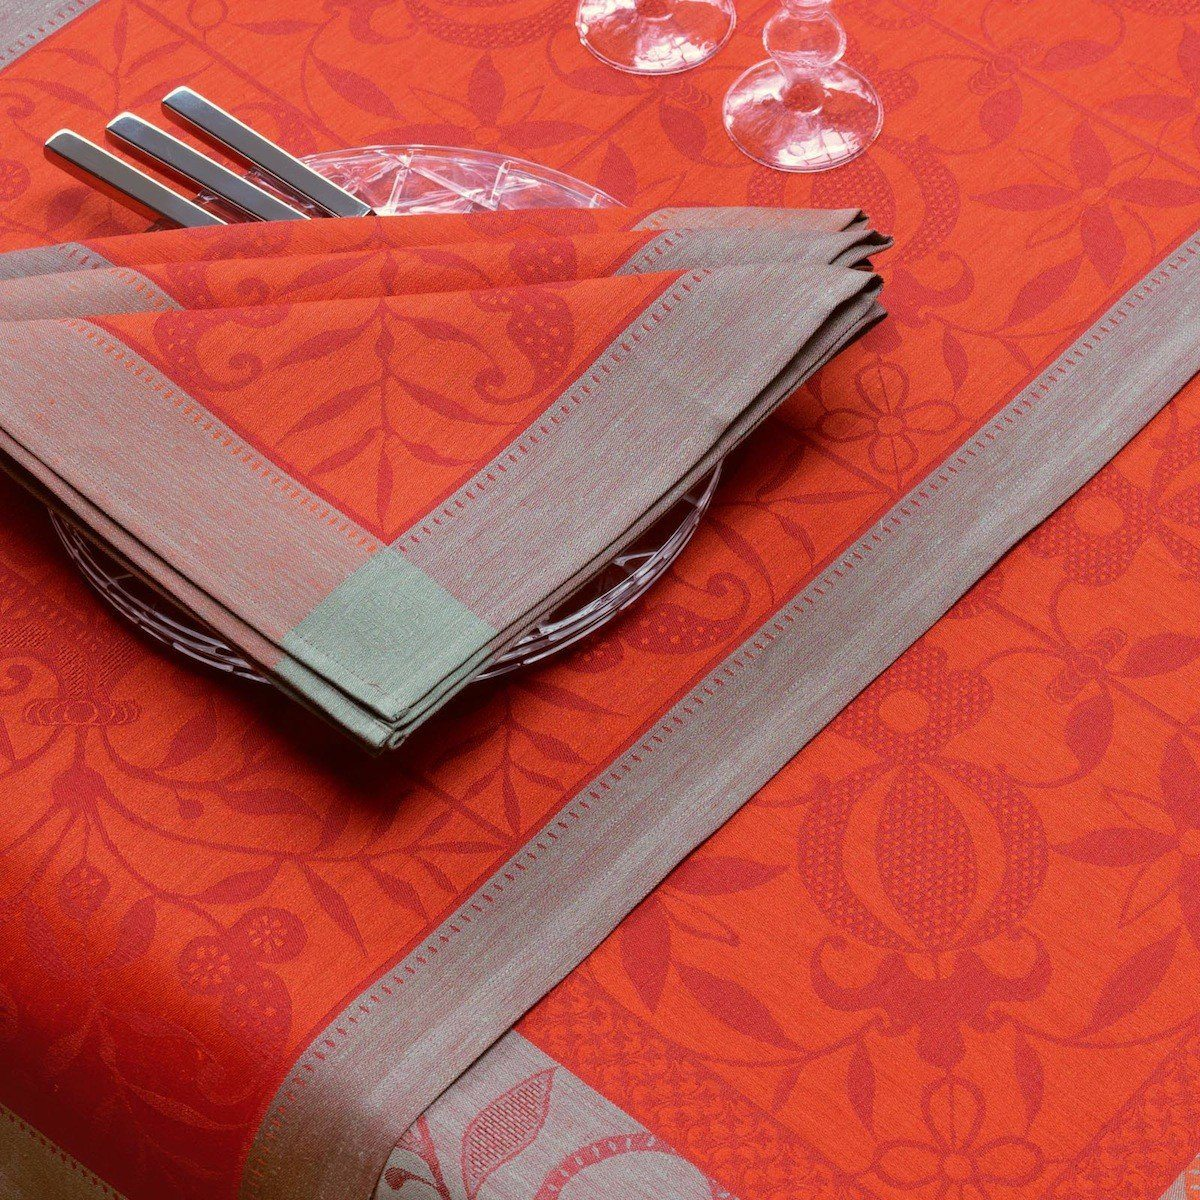 Le Jacquard Français Table Linen Venezia in Cornelian Fig Linens Orange Tablecloth placemat napkin